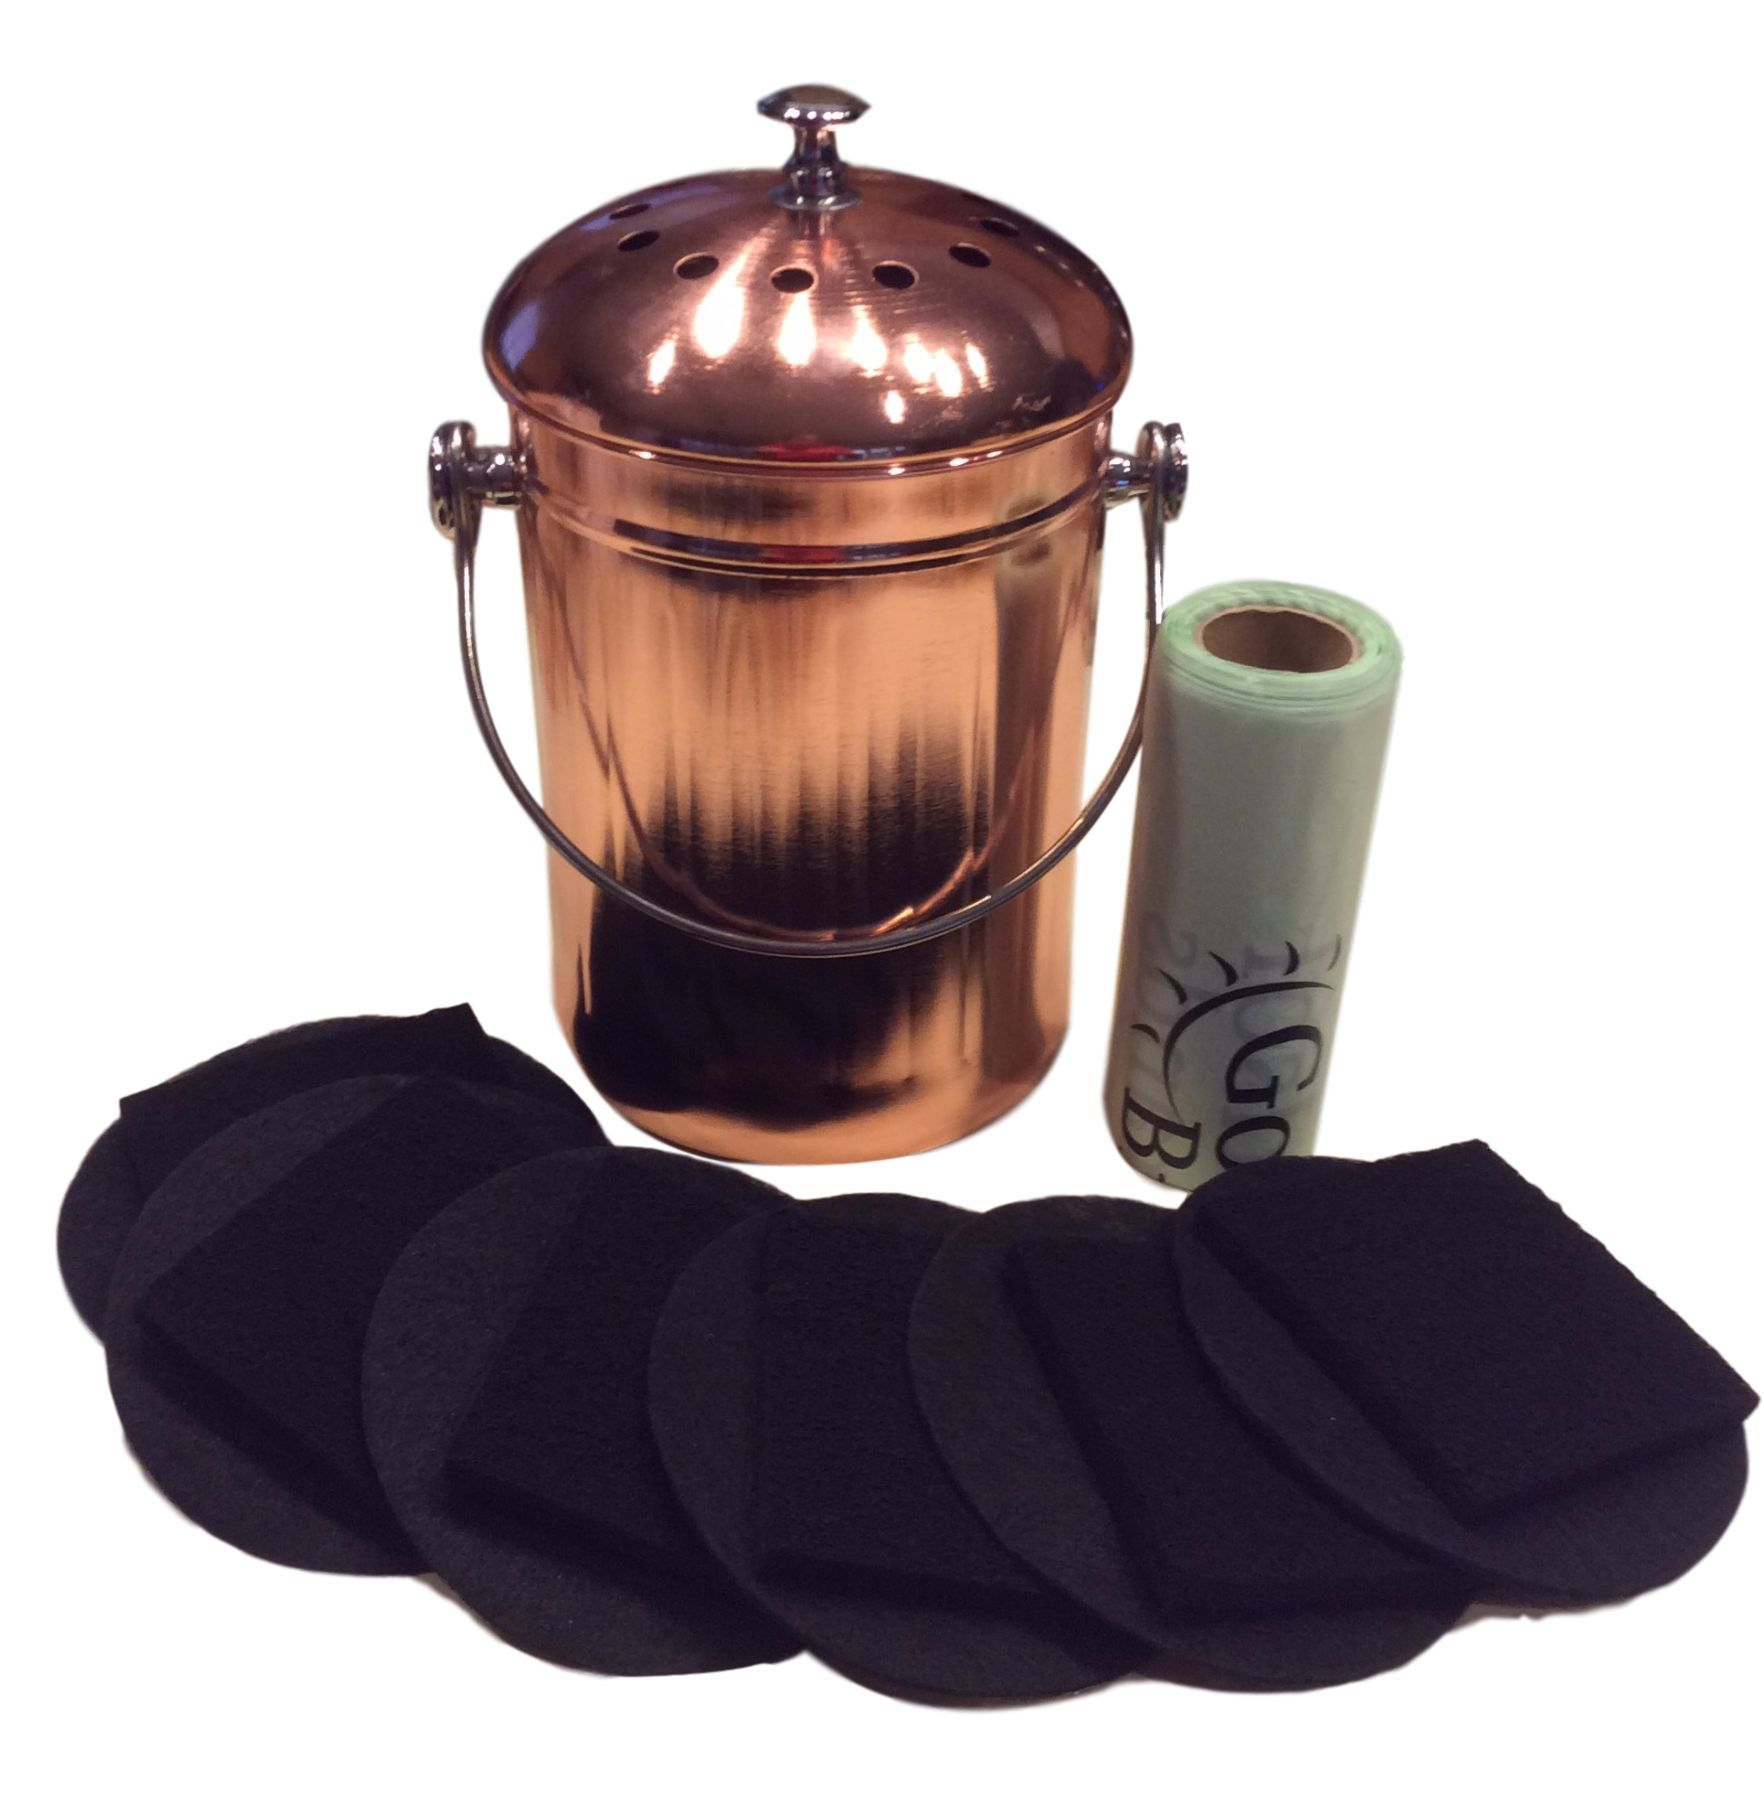 Nice Kitchen Compost Bin Copper Coated Stainless Steel Pail Supplied With Compost  Filters And Bags